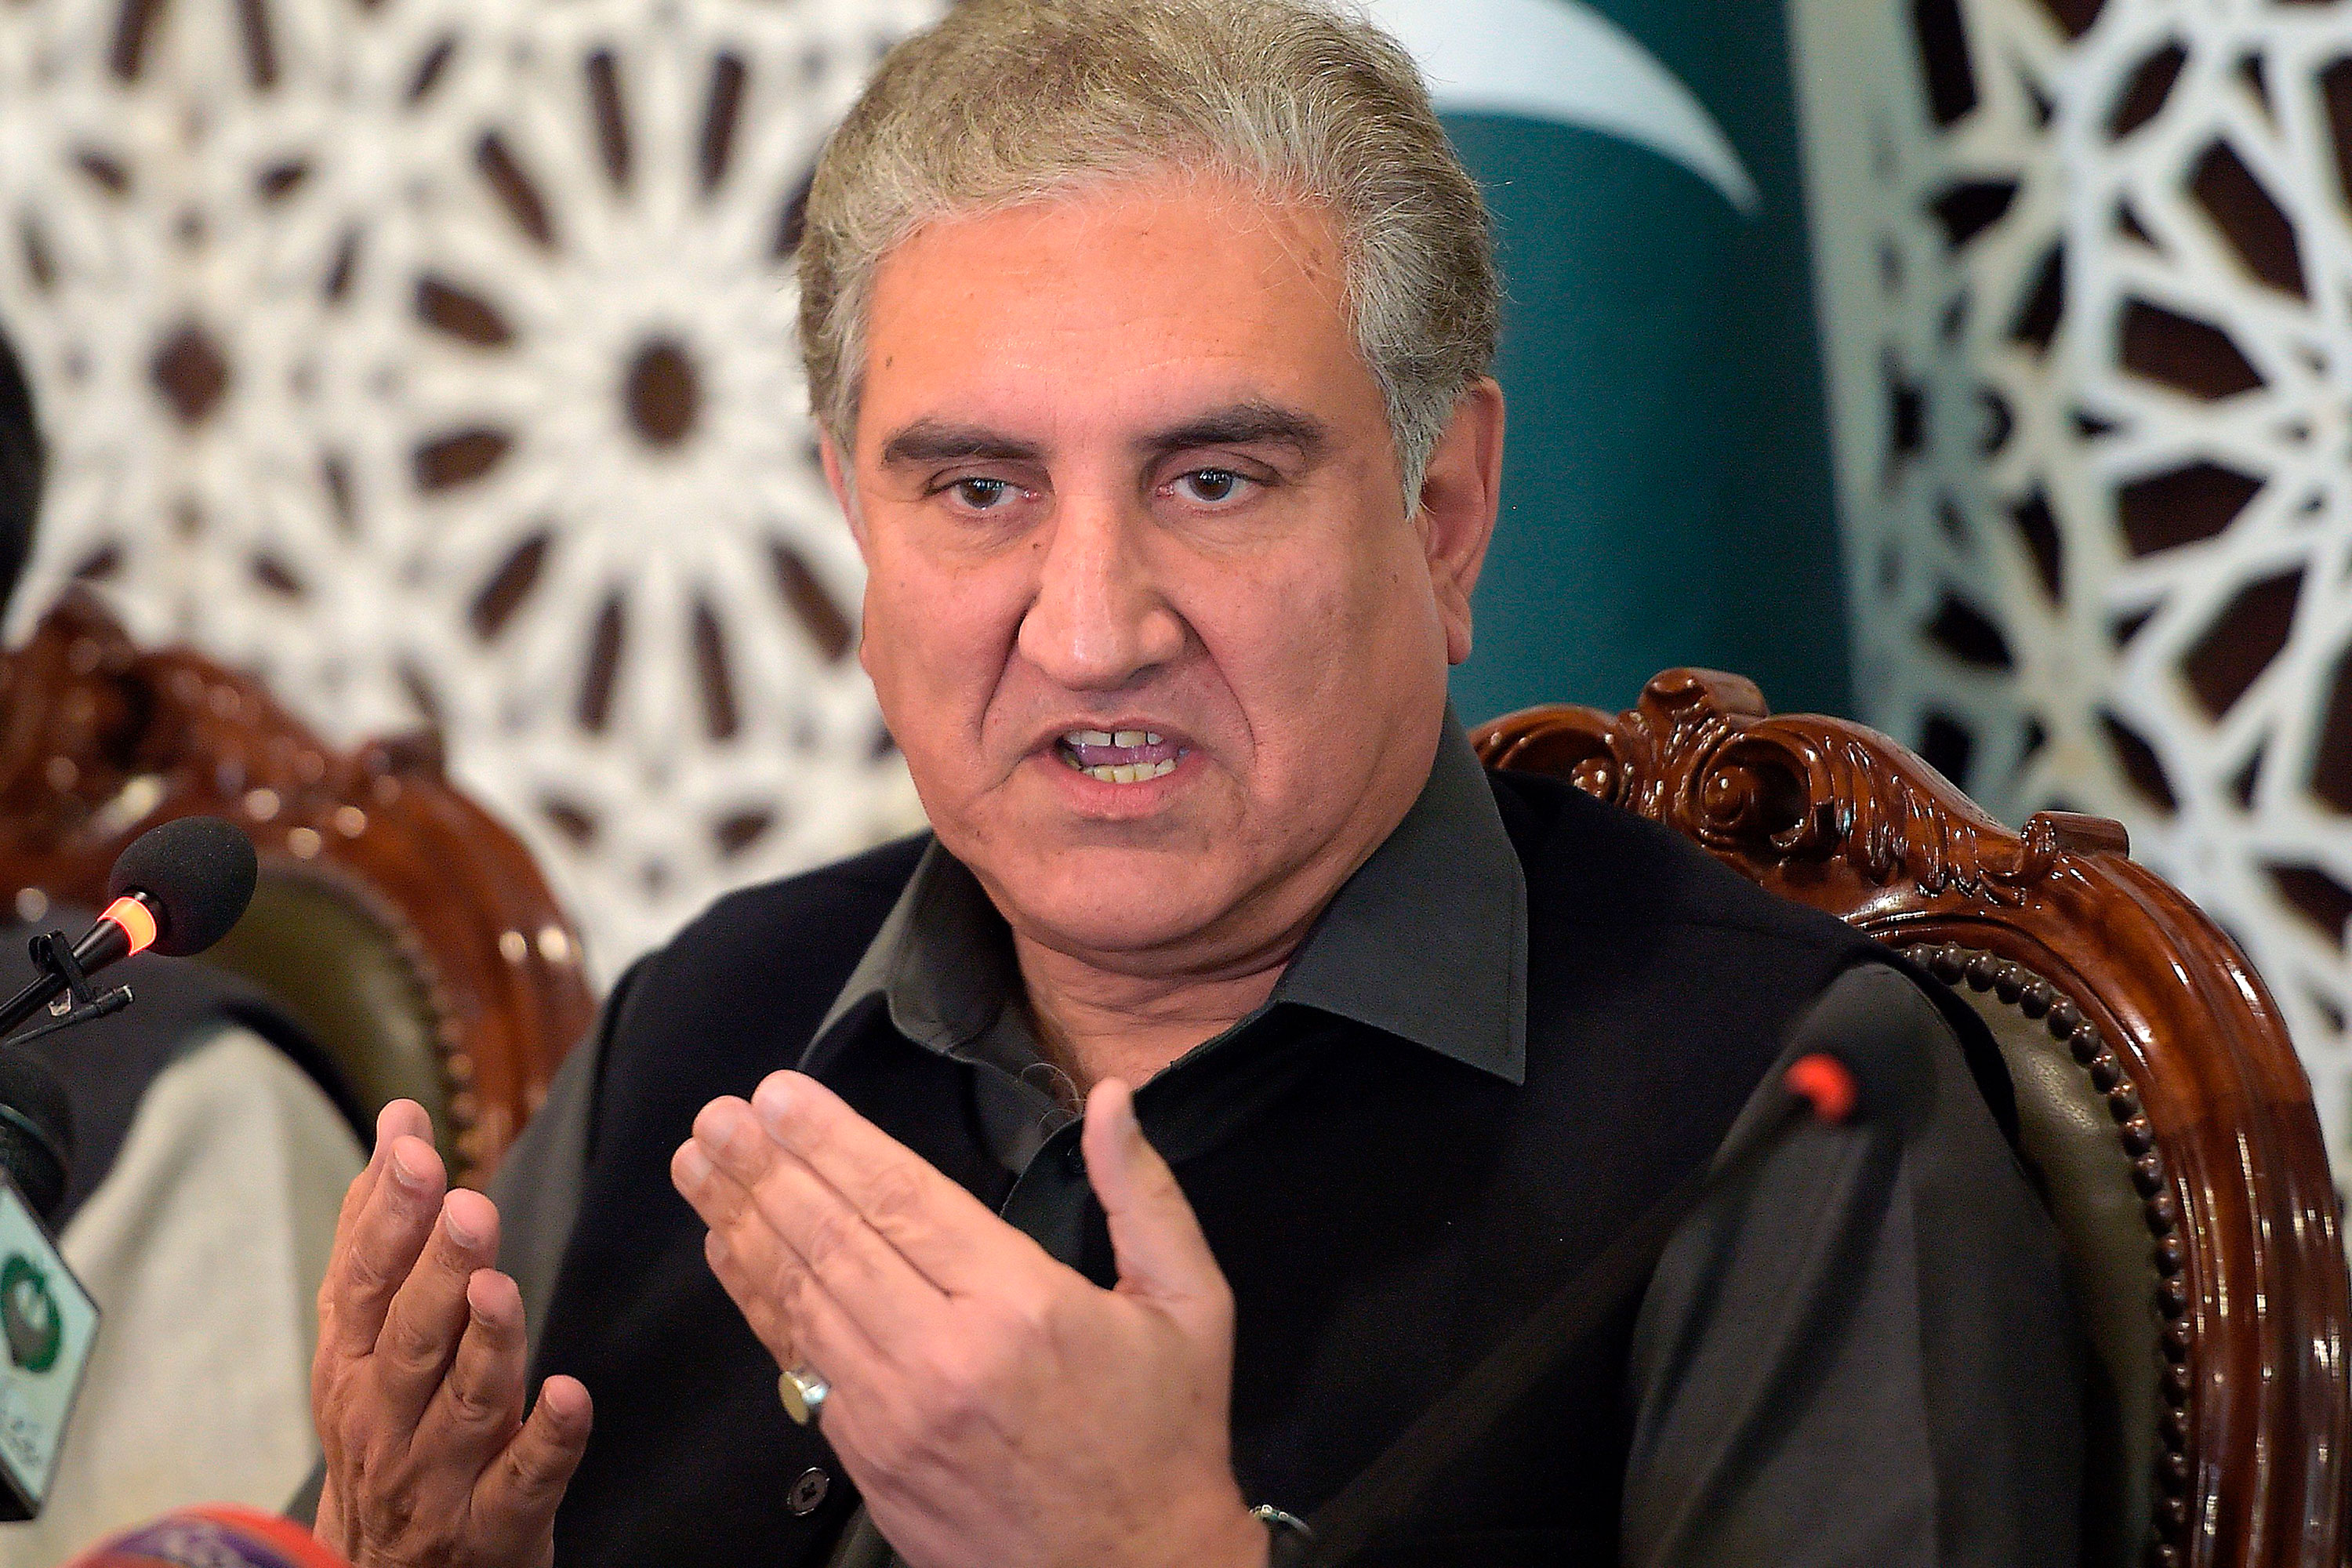 Pakistan's Foreign Minister Shah Mahmood Qureshi speaks during a news conference on March 1 in Doha, Qatar.